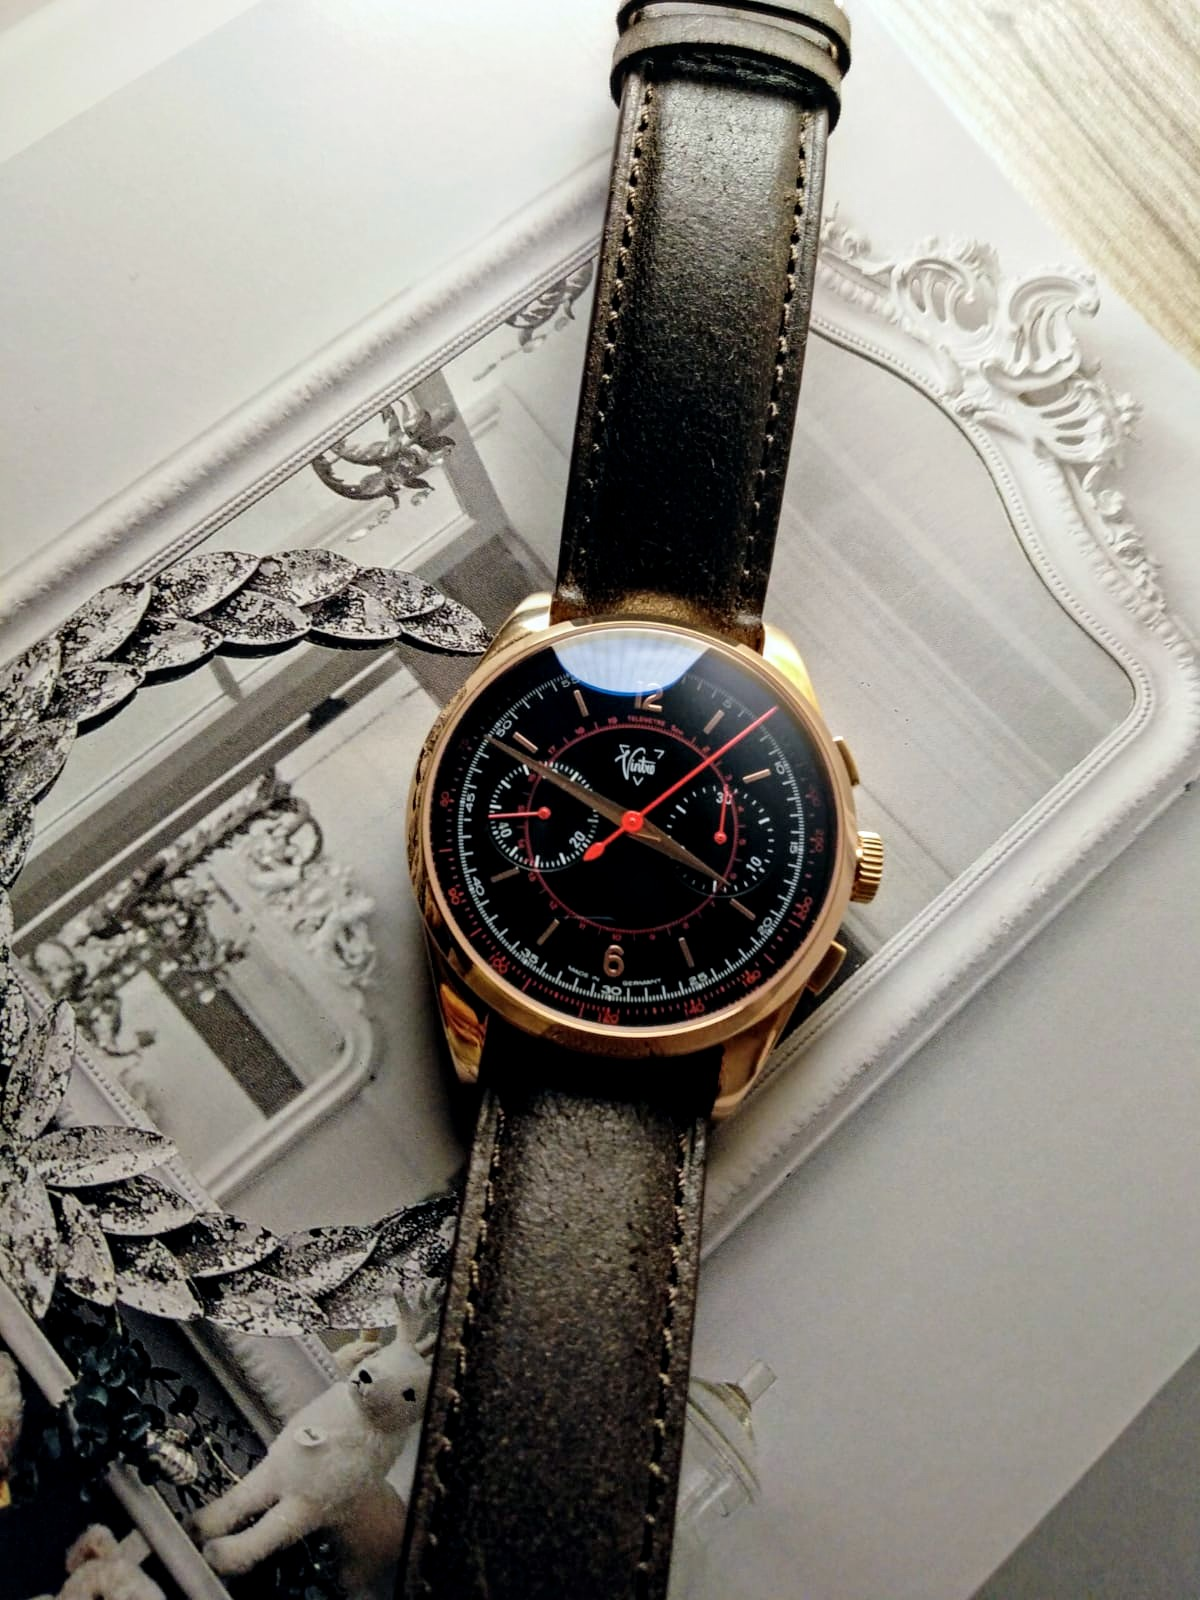 Rose Gold Le Mans 1952 Chronograph